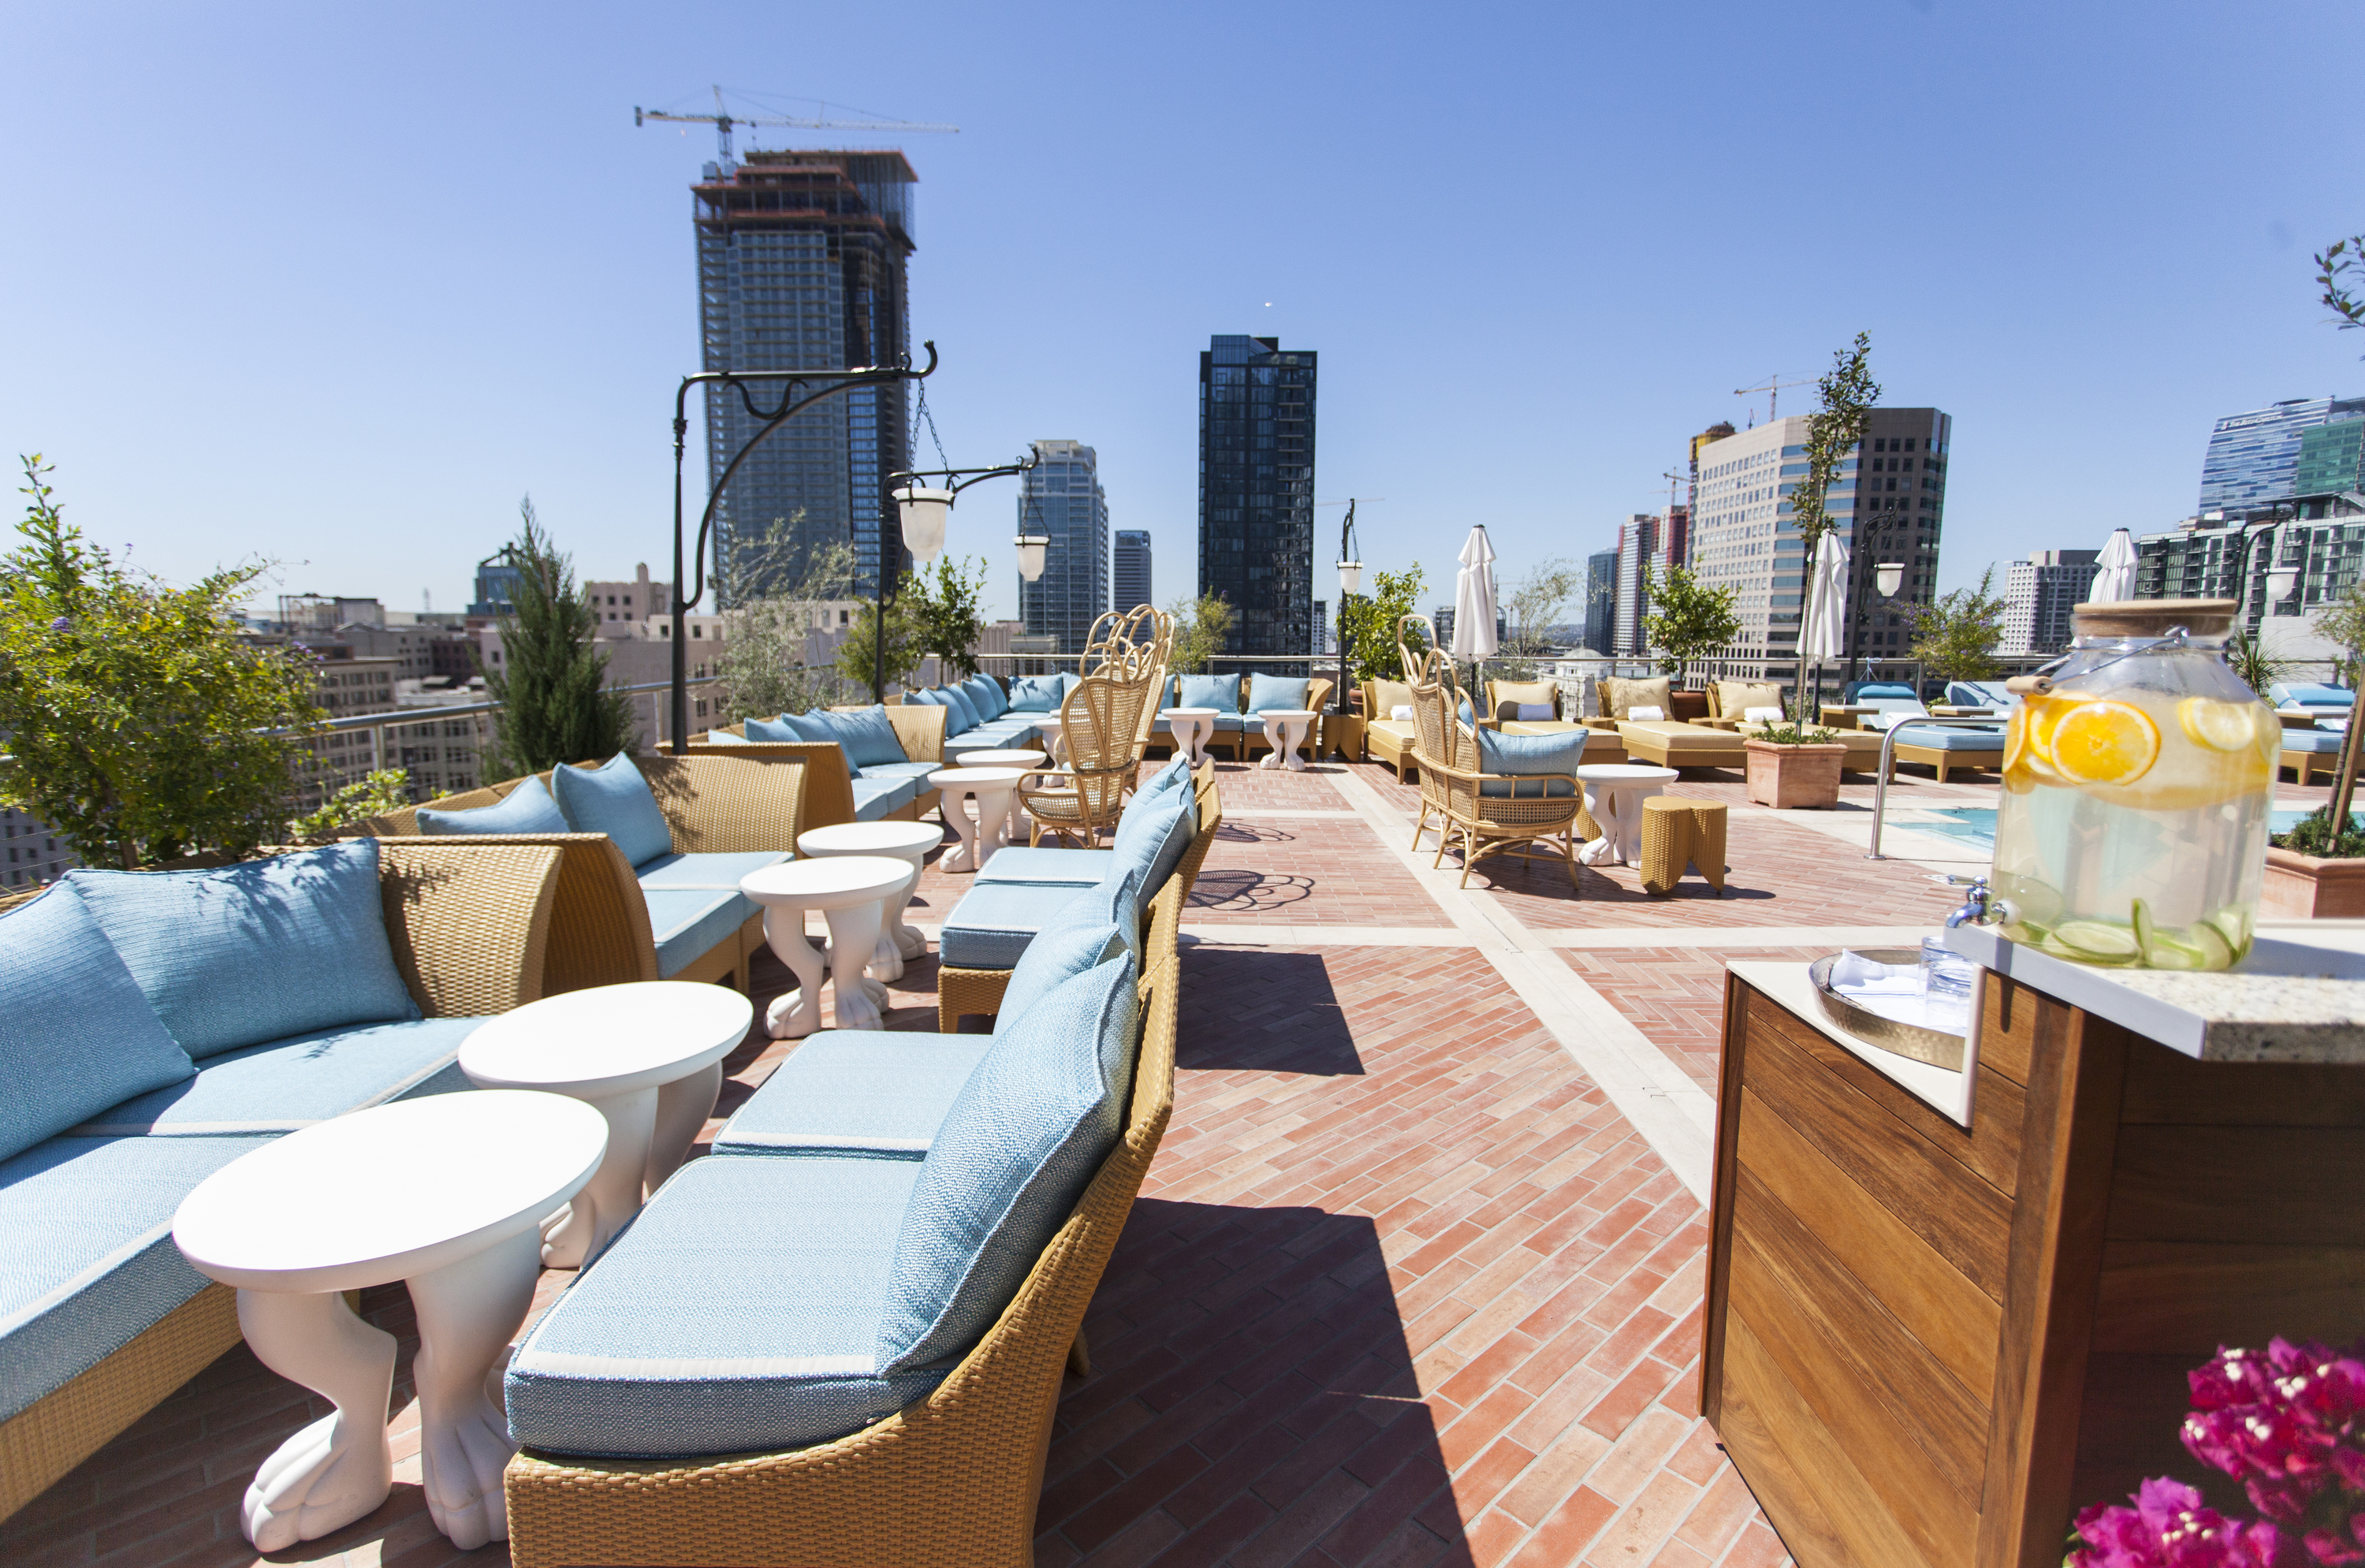 The Nomad S Rooftop Bar And Caf 233 Opens To The Public On